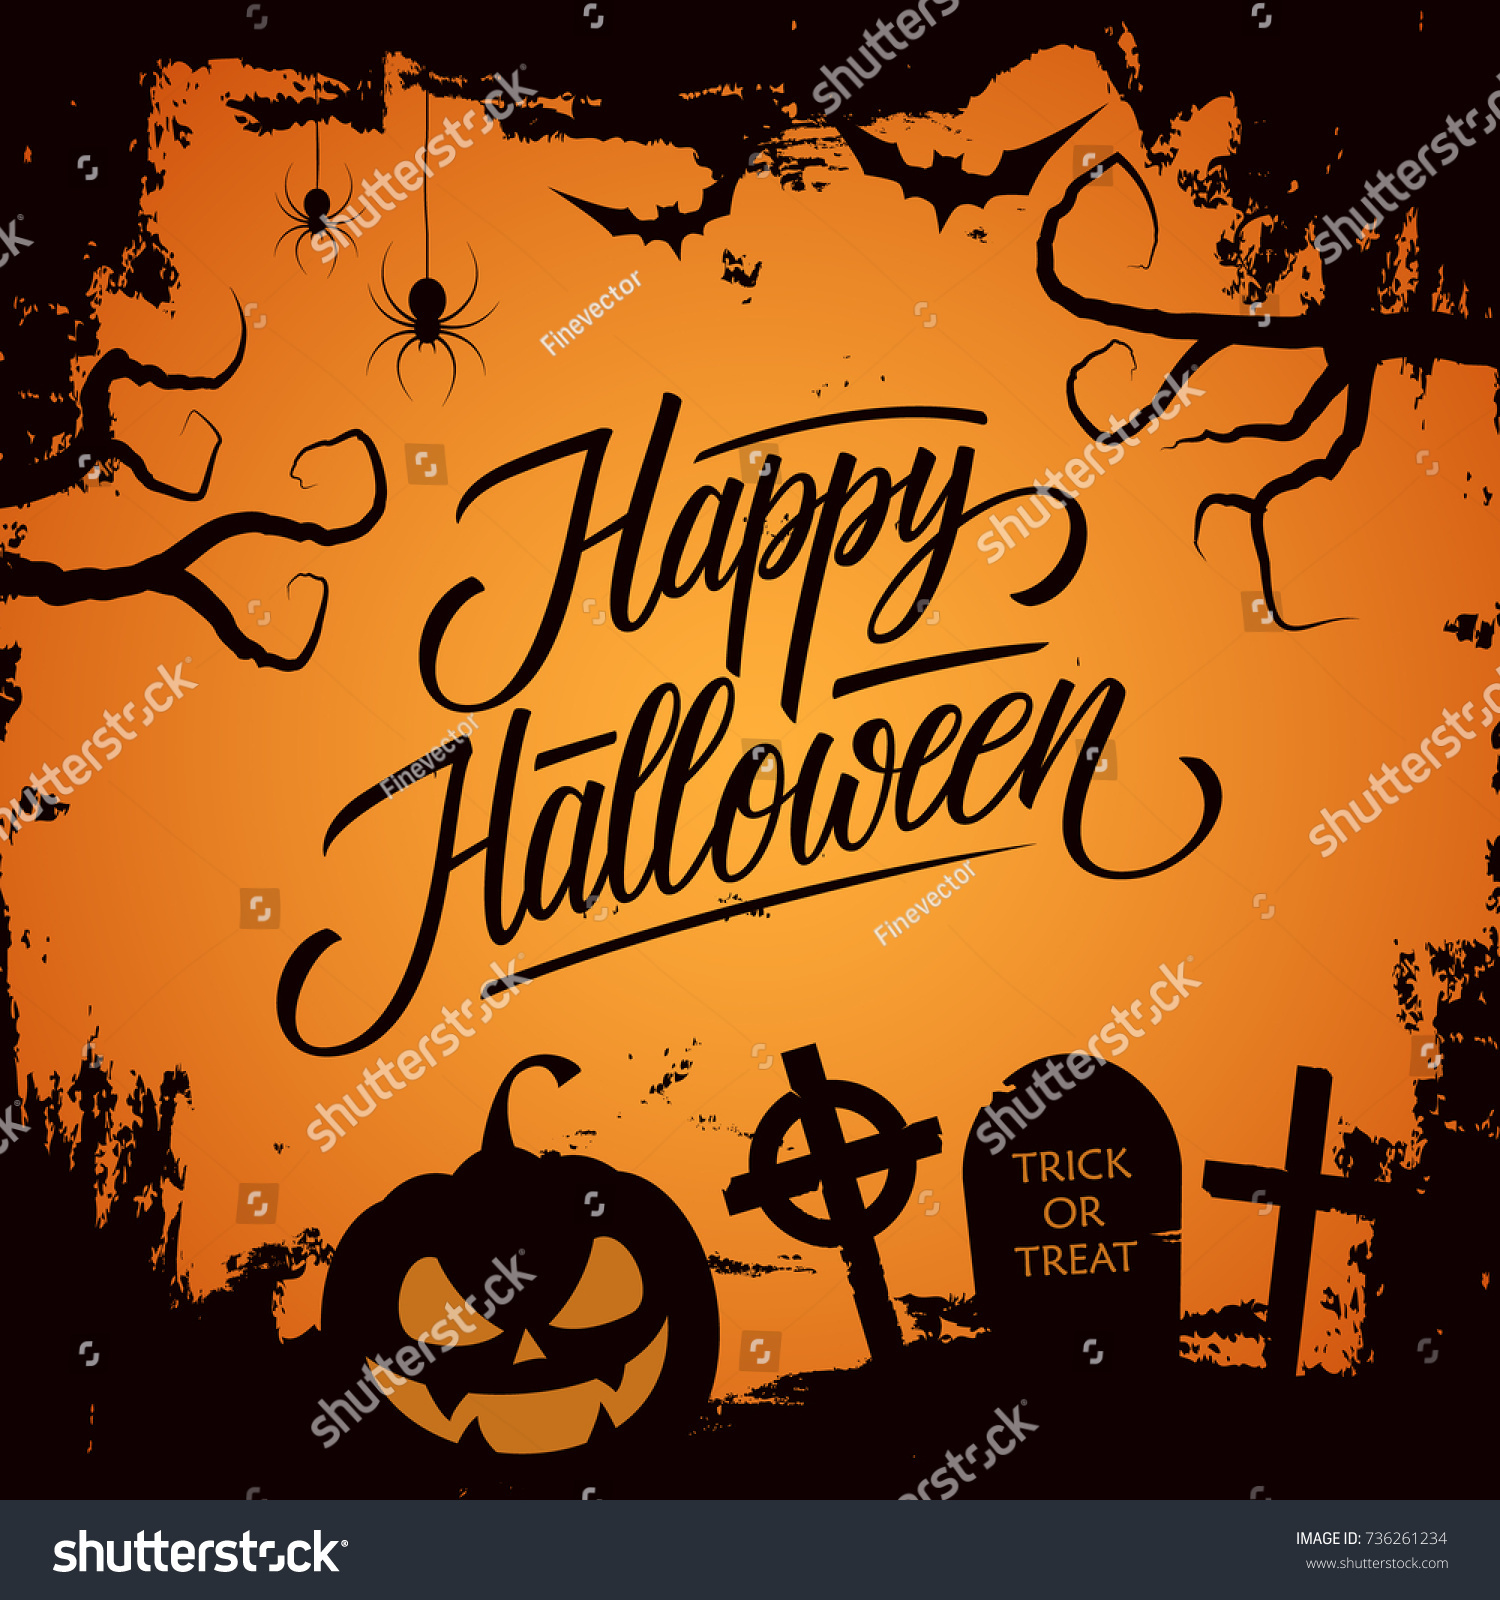 Happy Halloween Celebrate Card With Hand Lettering Text Design And